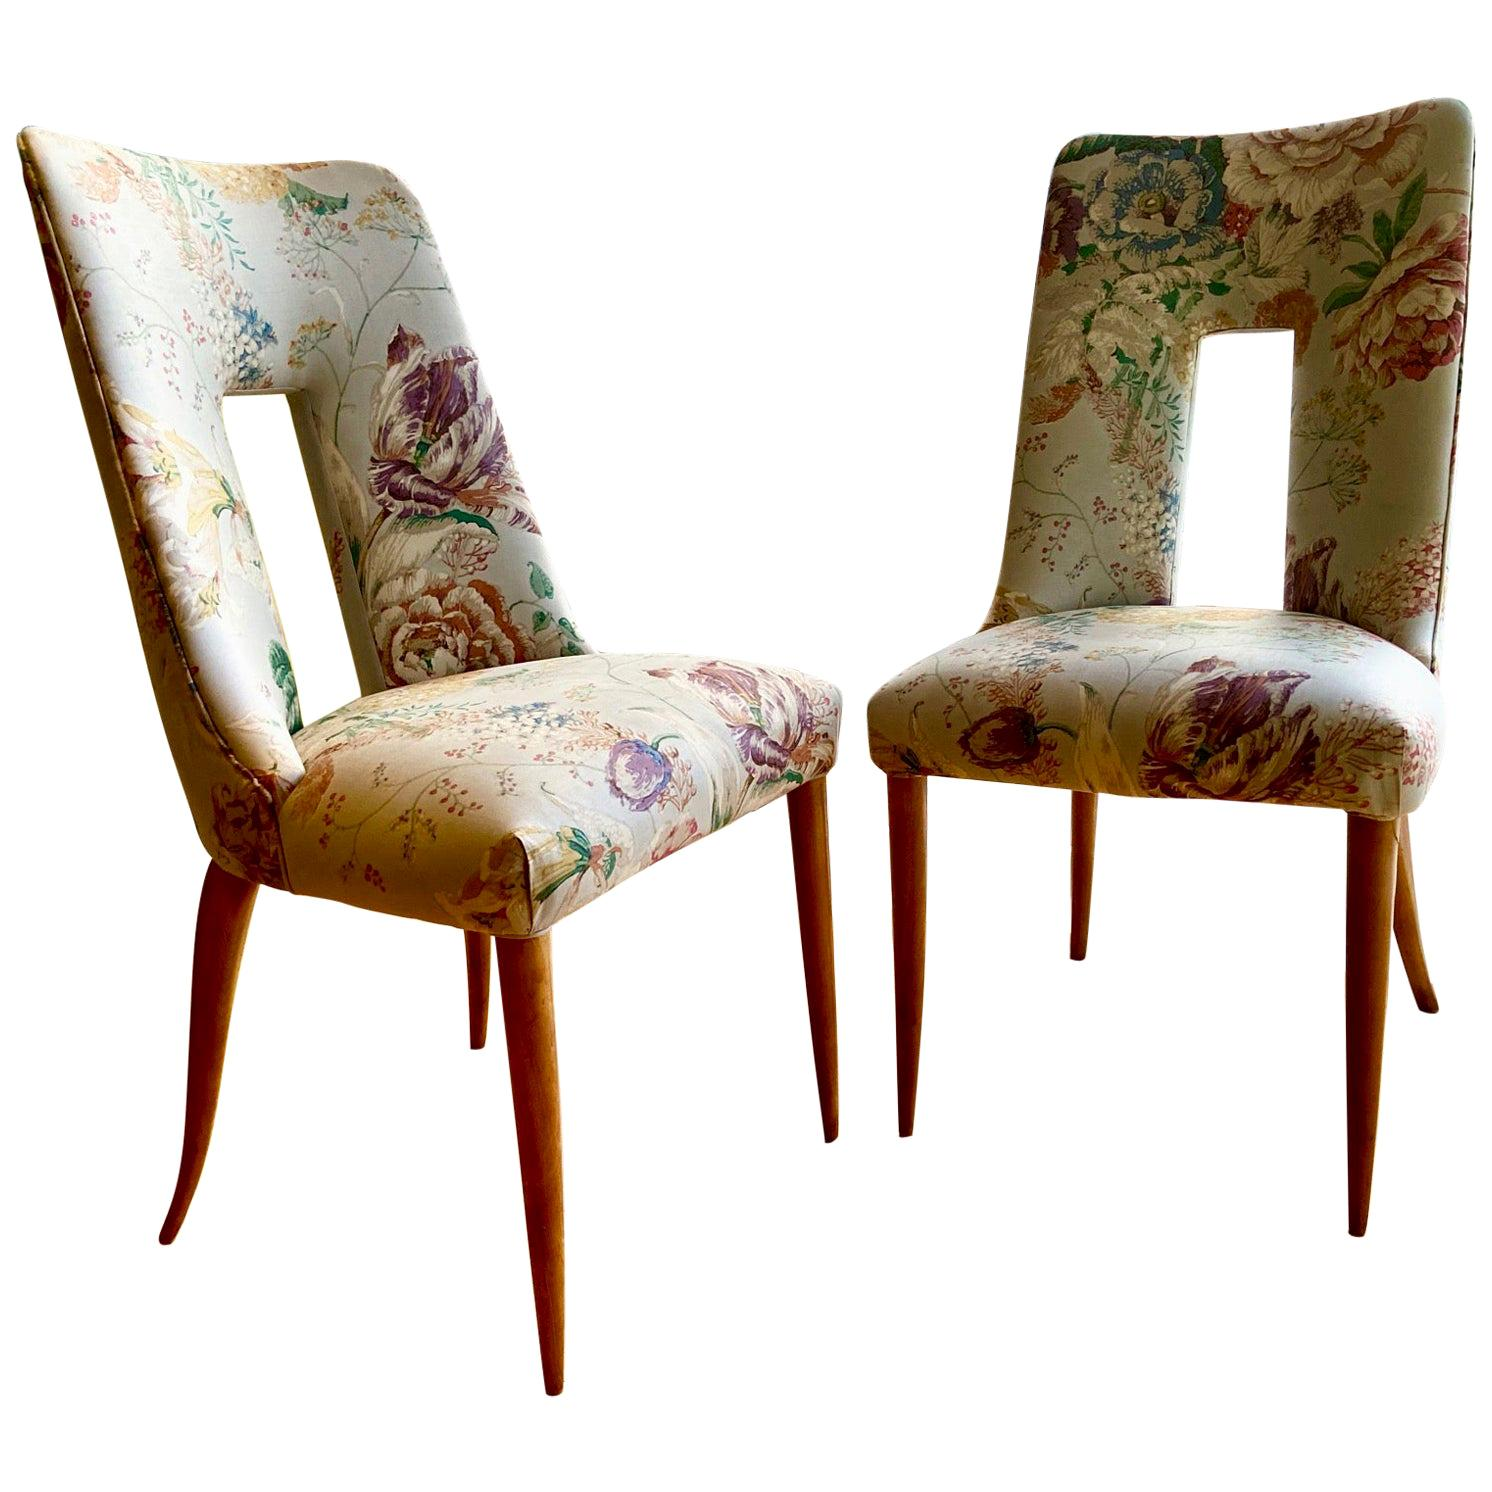 a Pair of 1950s Italian Side Chairs, in Flowery Pastel Grey Blue Upholstery